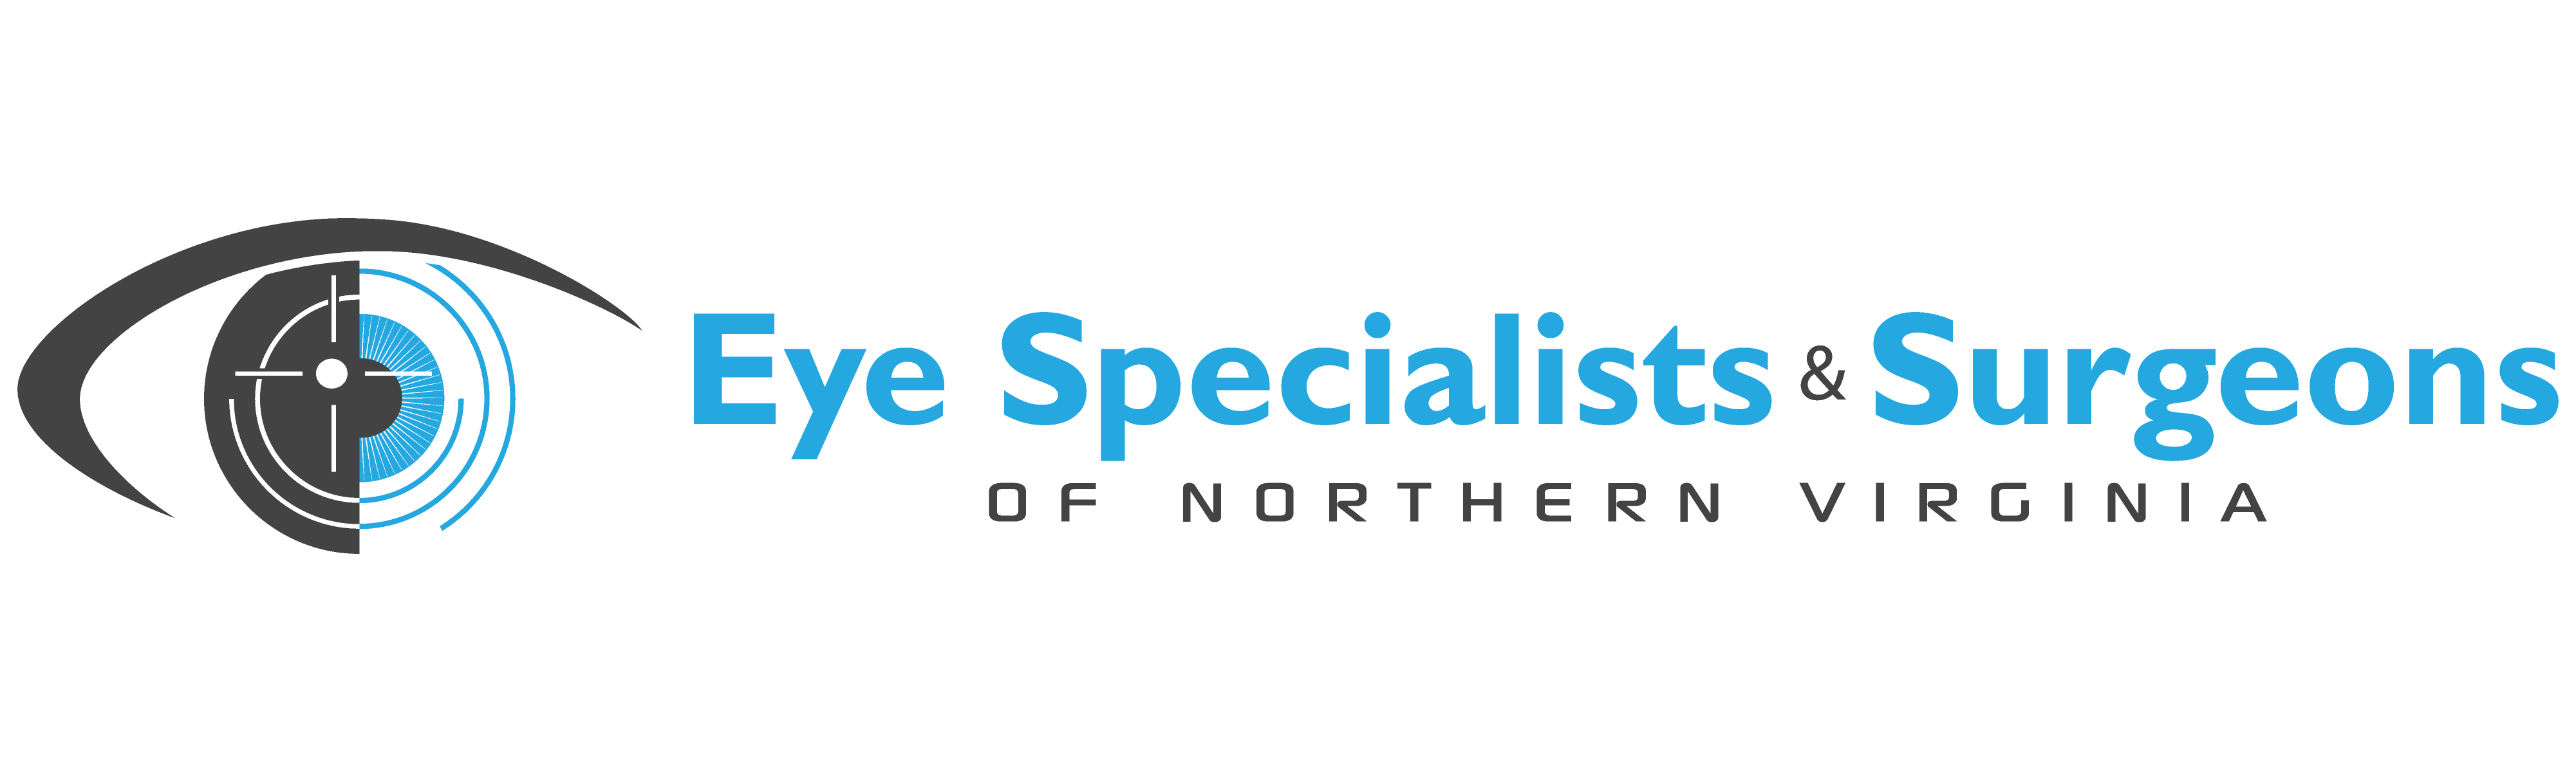 Eye Specialists & Surgeons of Northern Virginia